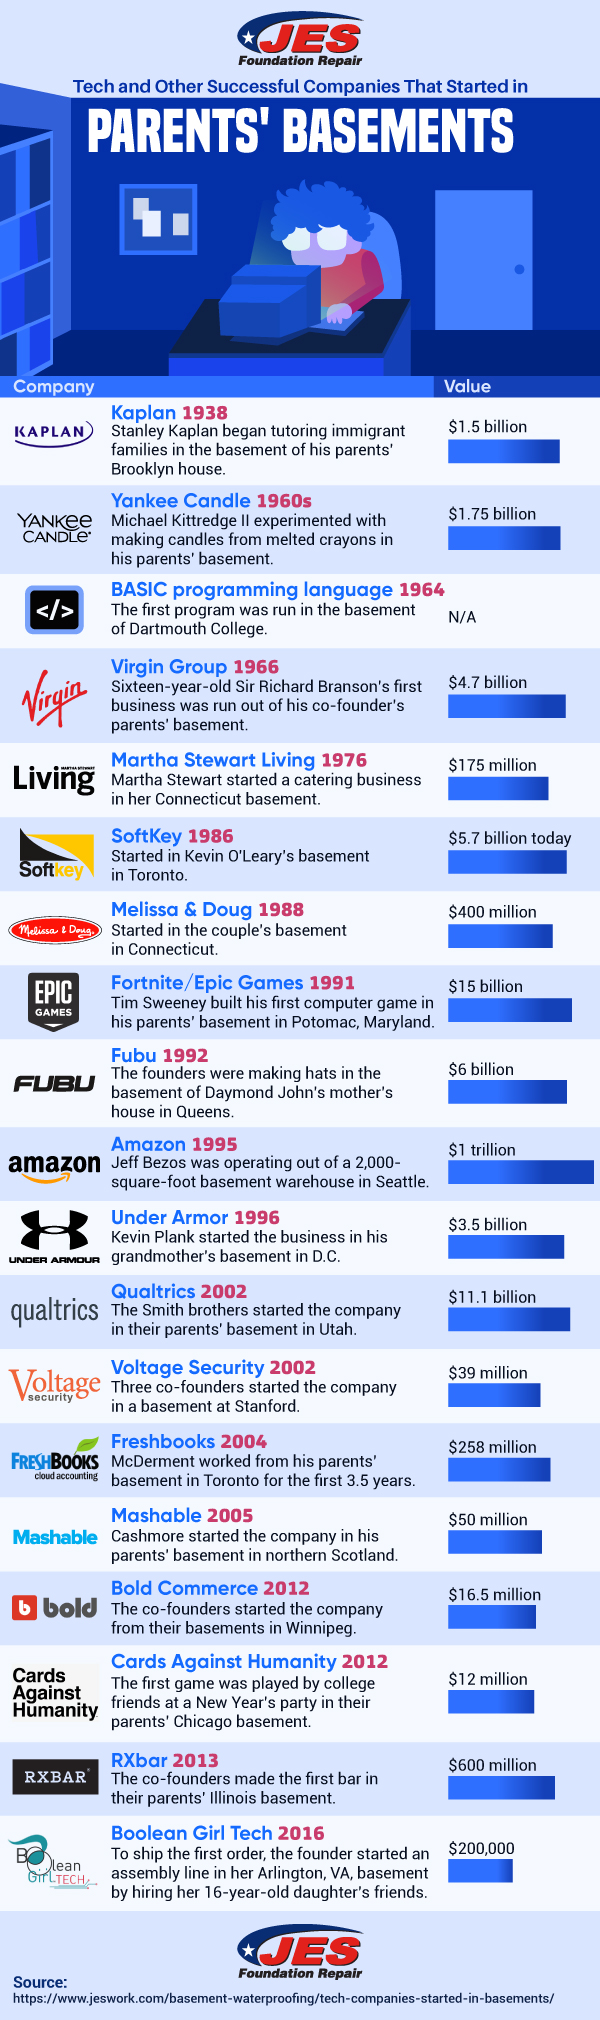 Tech Companies Started Basement Infographic Image